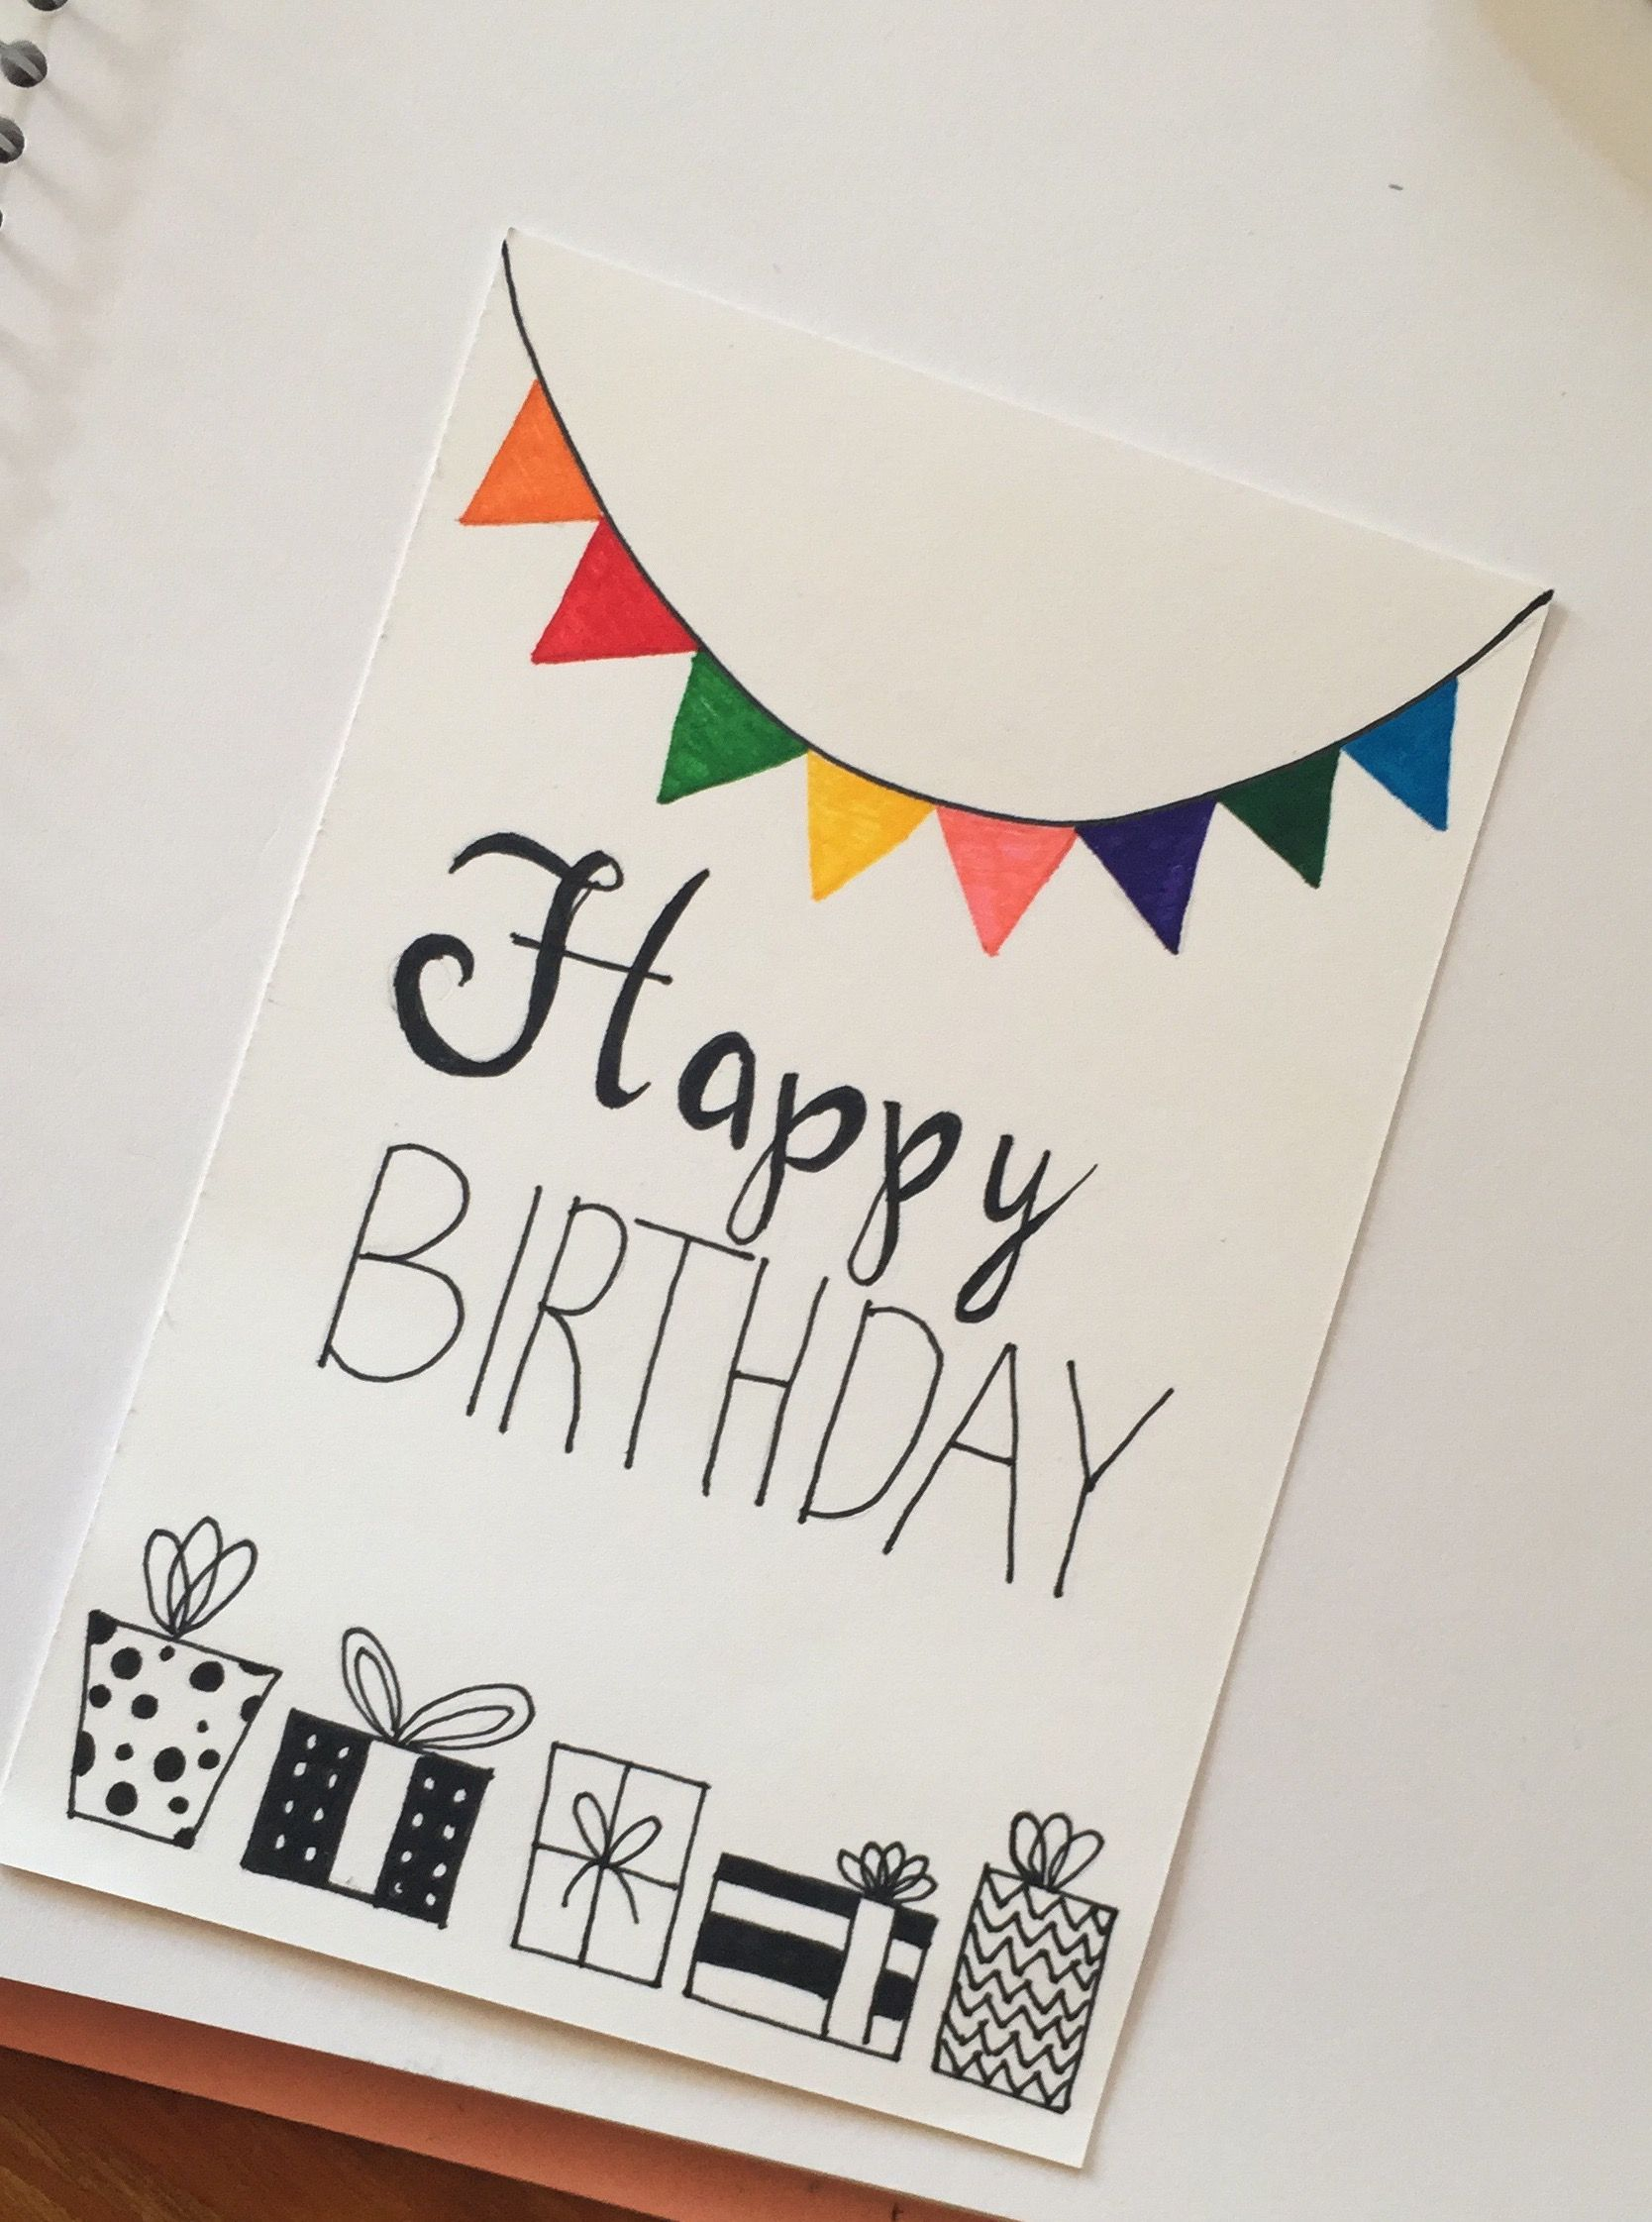 Happy Birthday Card Flag Cute White Design Handmade Drawn Pen Family